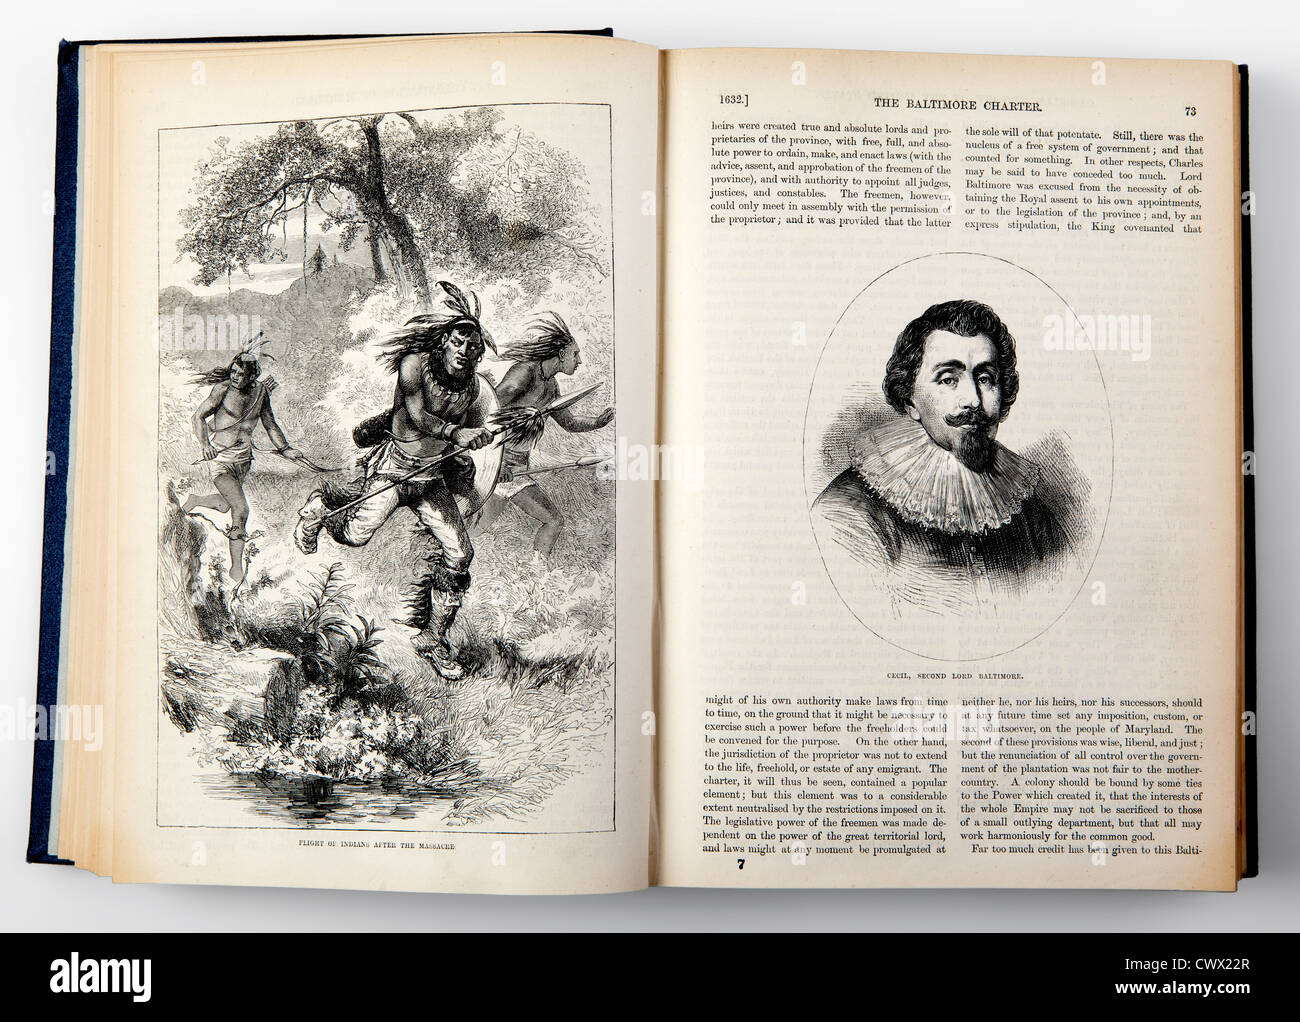 An open book from the 19th century, history of the United States with an image of a native American - Stock Image